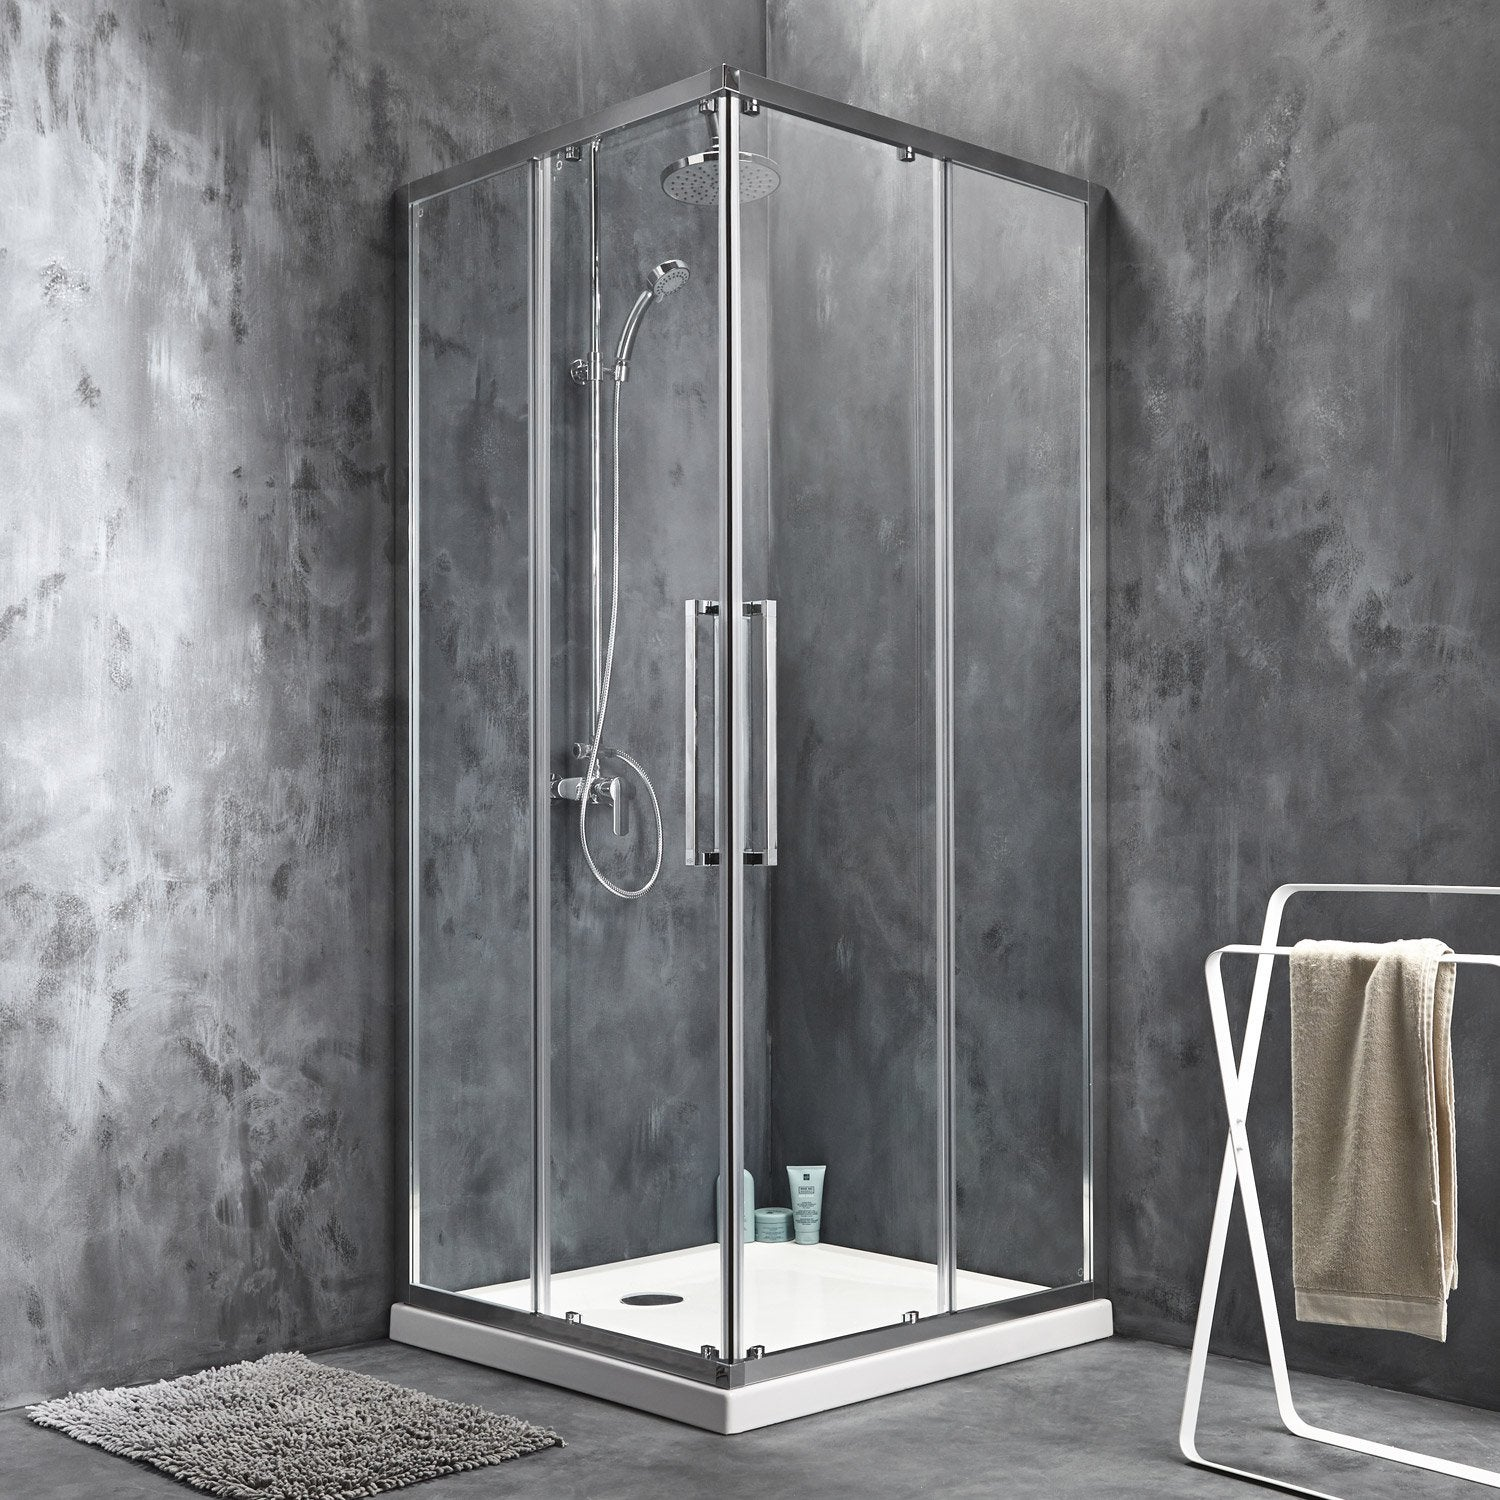 pluie x sur les portes de douche en verre heju blog. Black Bedroom Furniture Sets. Home Design Ideas